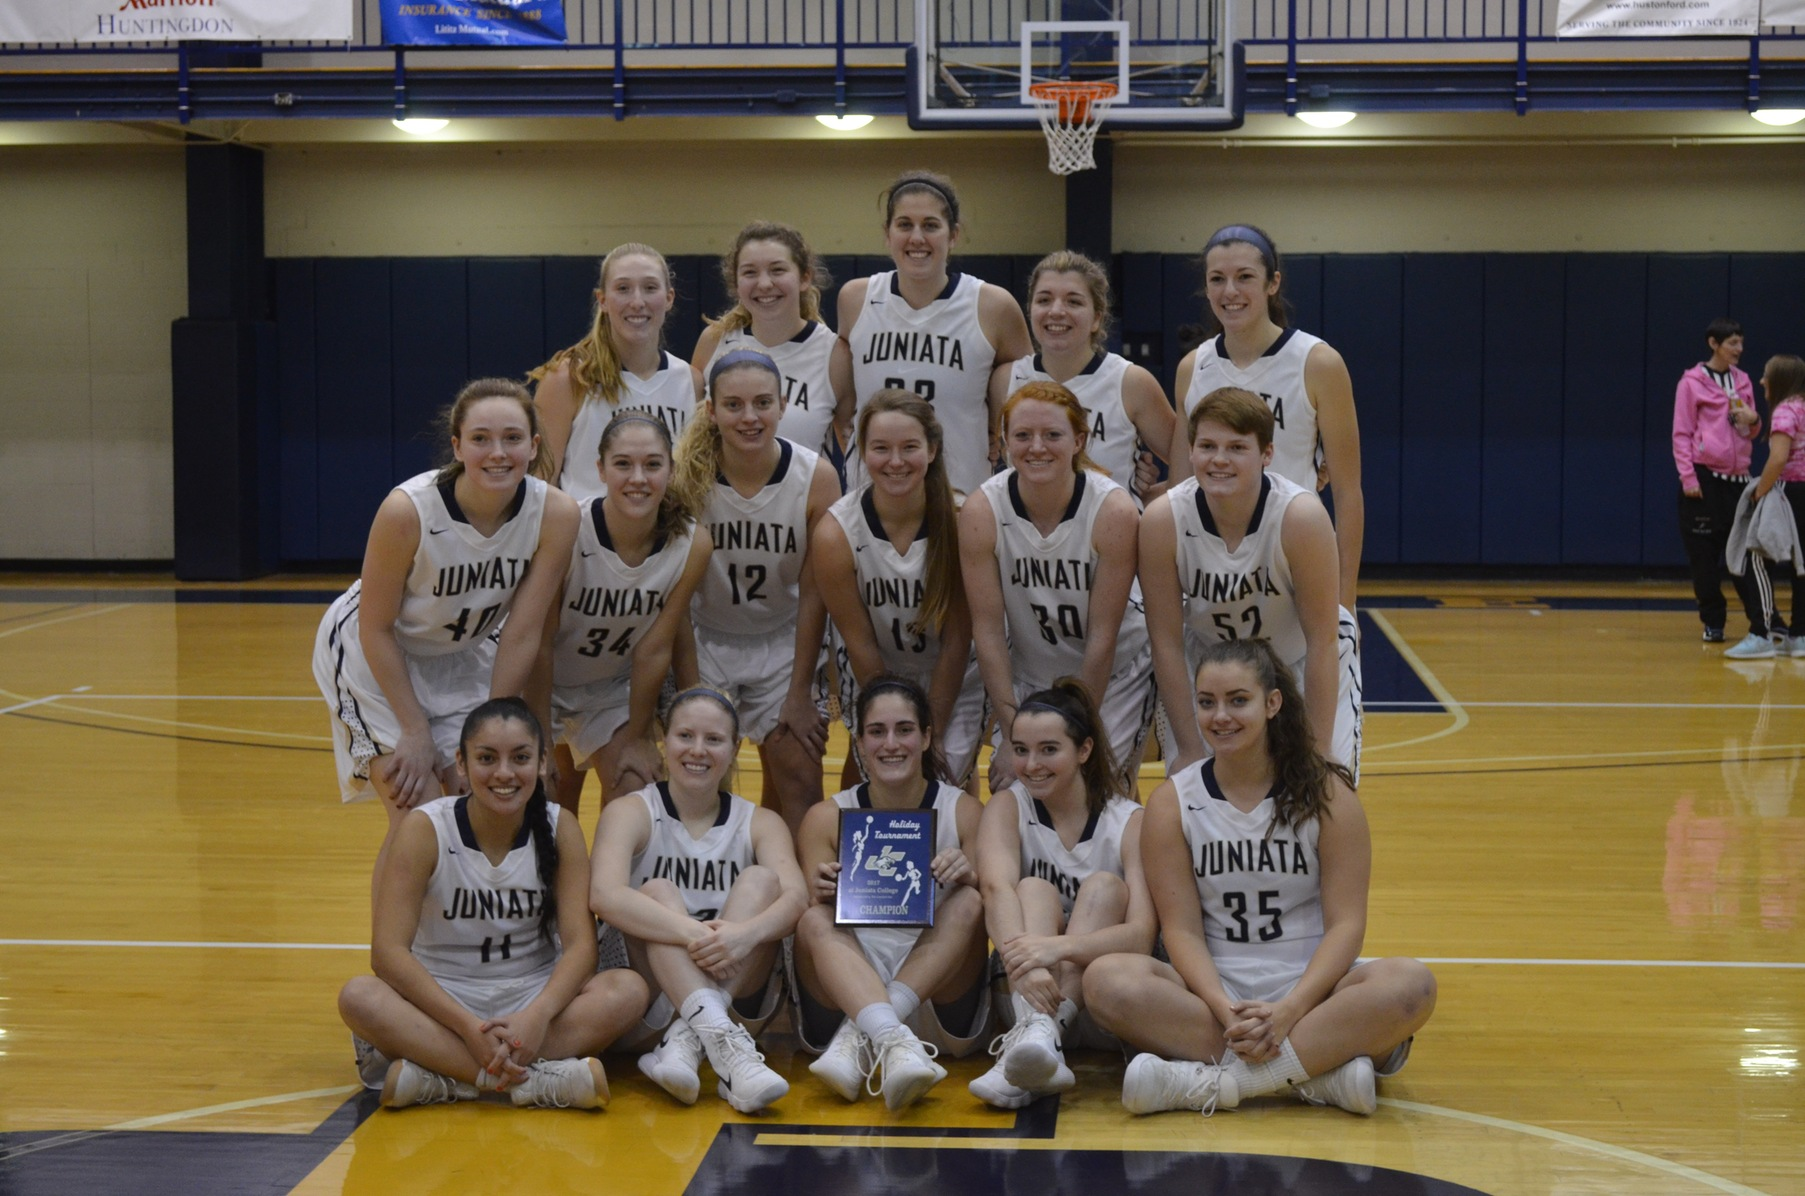 The Juanita women's basketball team after winning their 12th Annual Holiday Tournament. (Photo by Amanda Gretz)